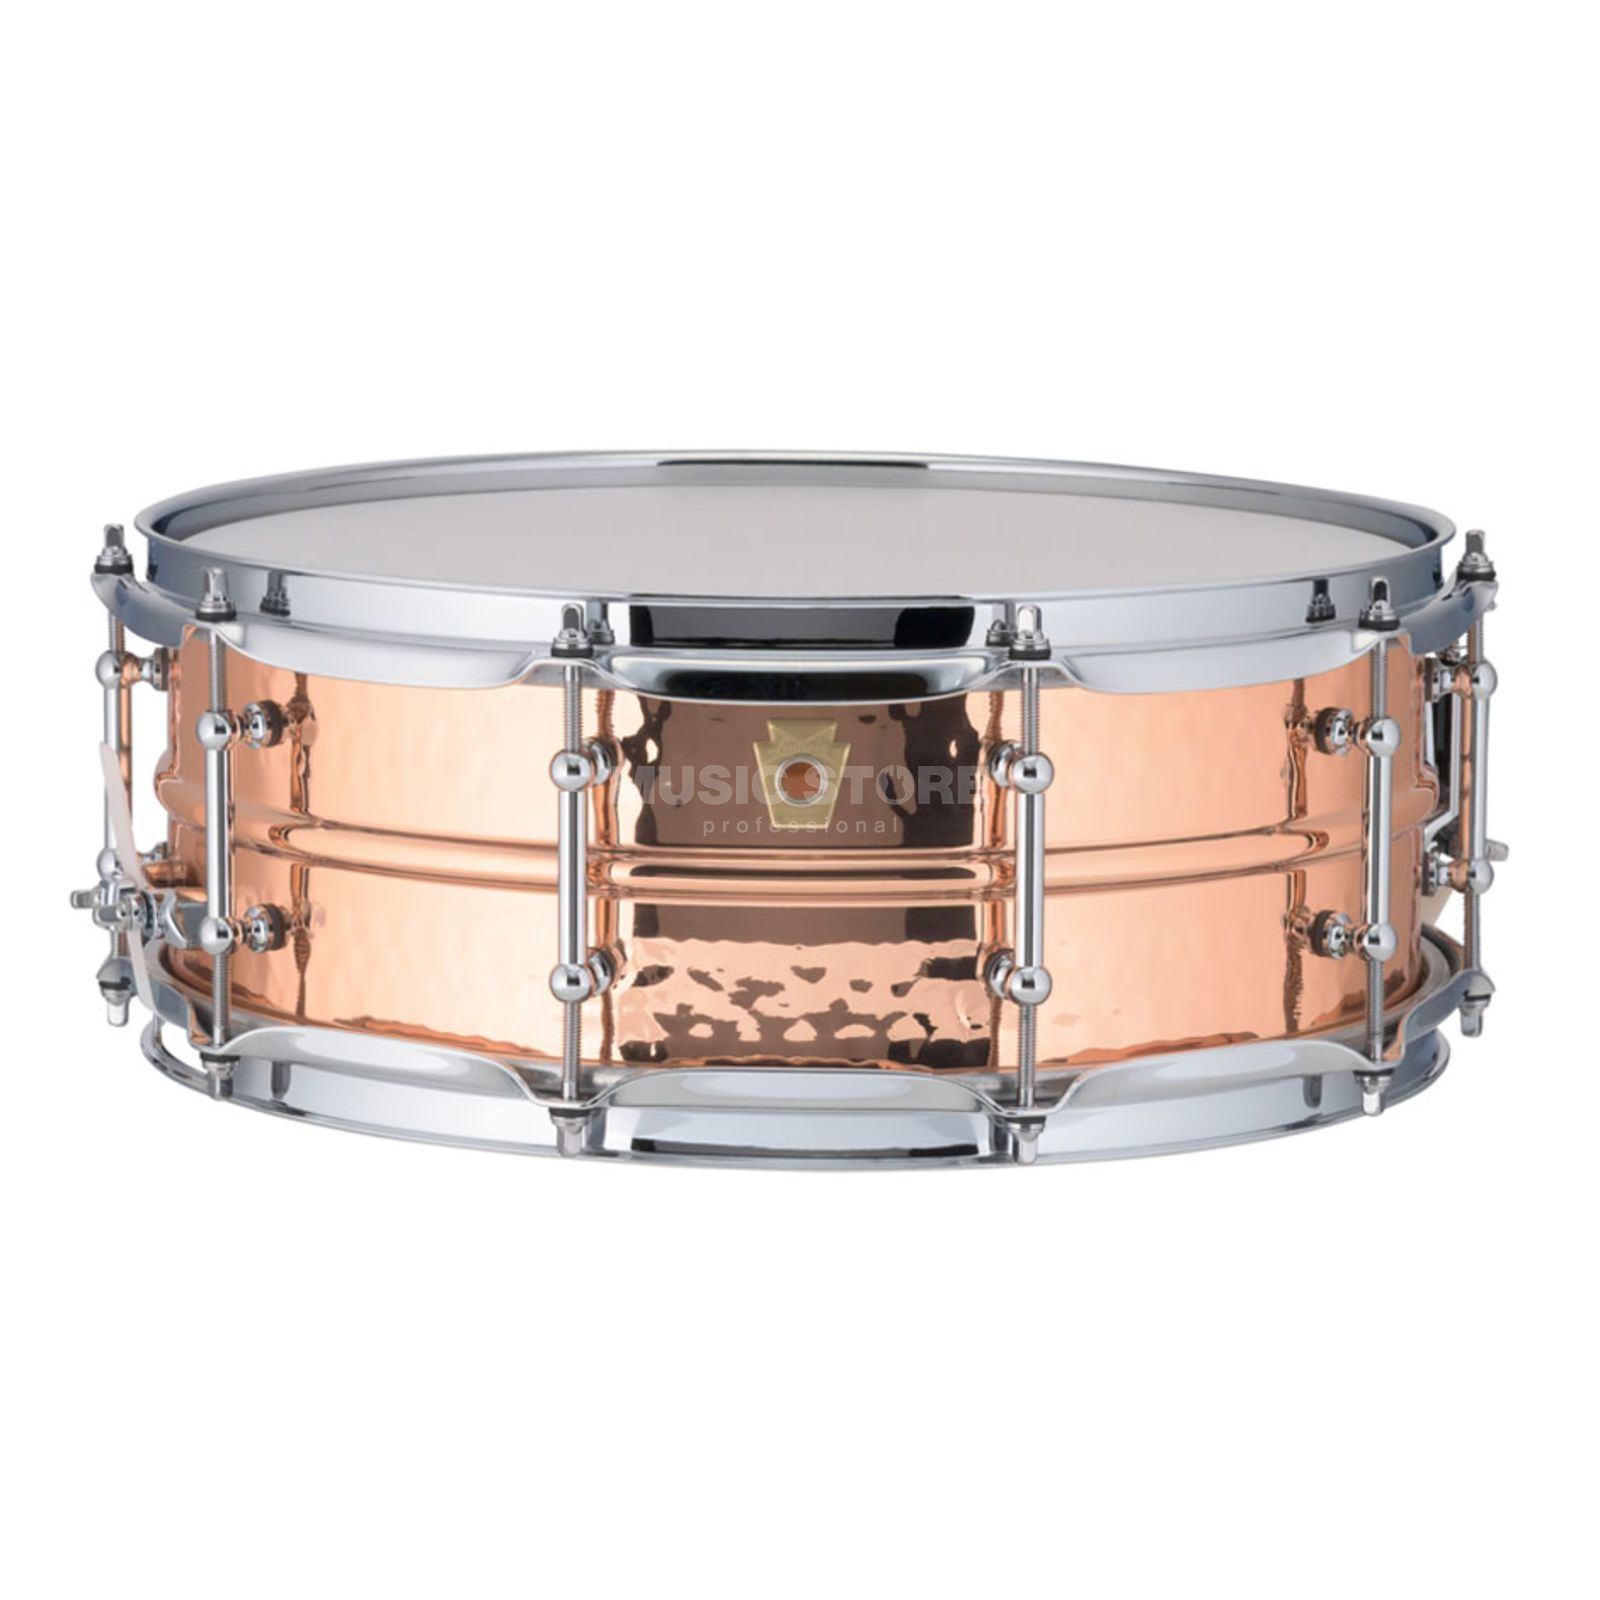 "Ludwig Copper Phonic Snare LC660KT, 14""x5"", Hammered Copper Product Image"